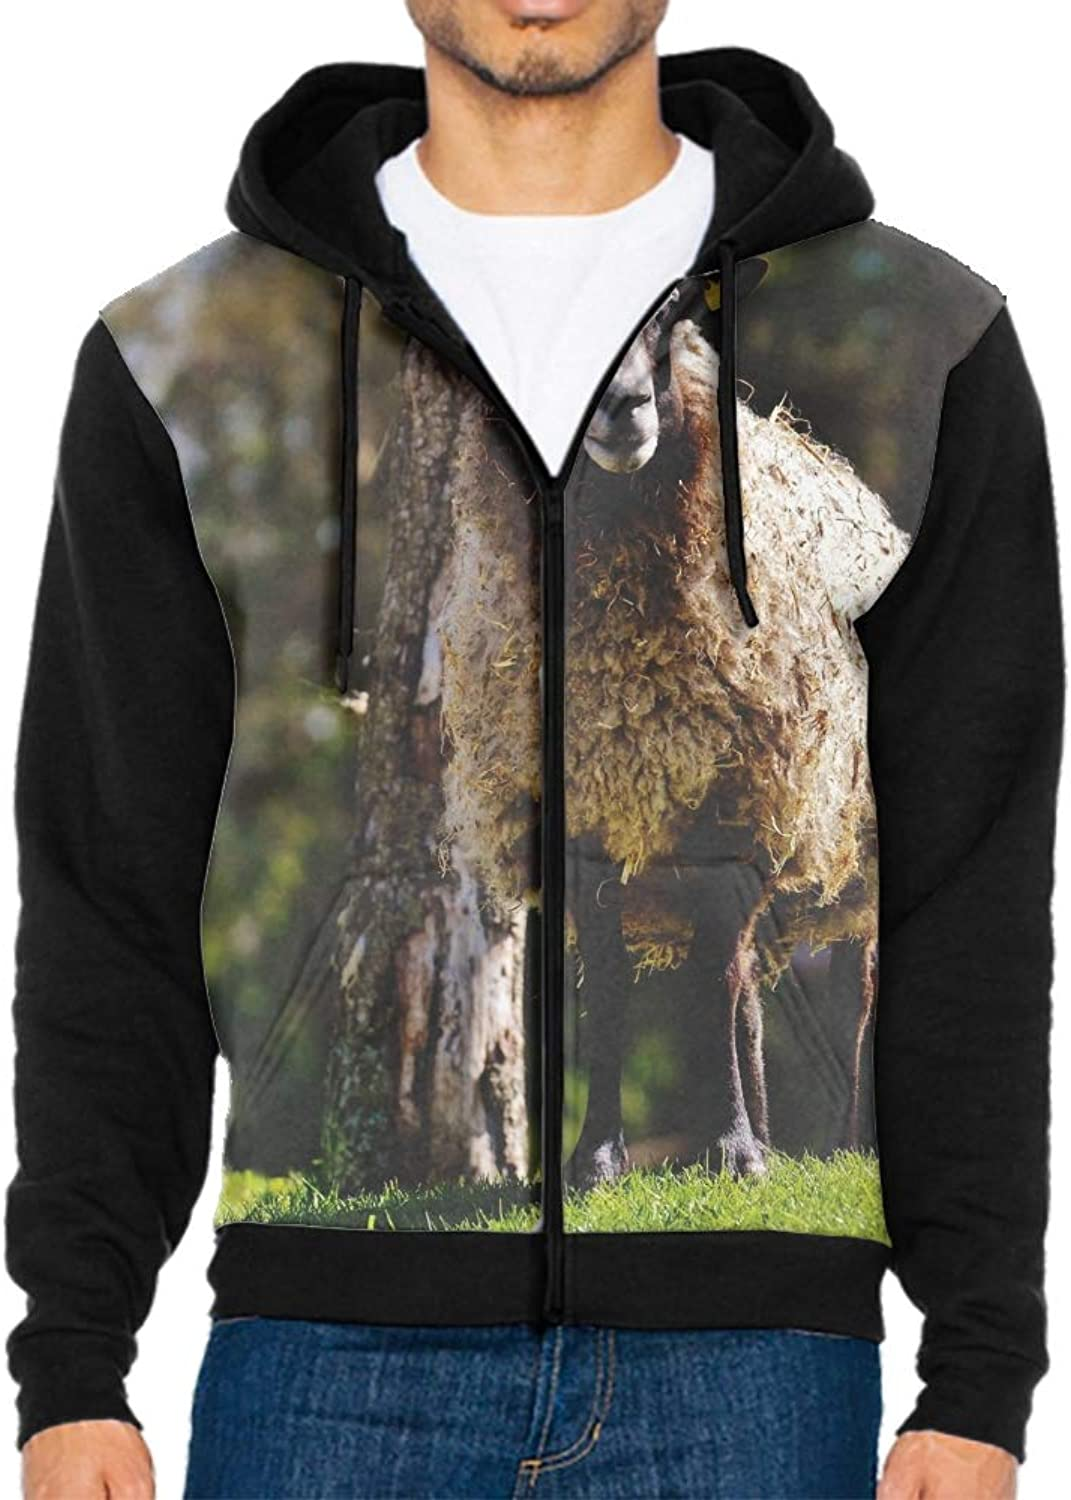 Anyako Men's Sheep Hair Grass Hoodie Novelty Cool Zip Up Hooded Sweatshirt Hoodie S2XL